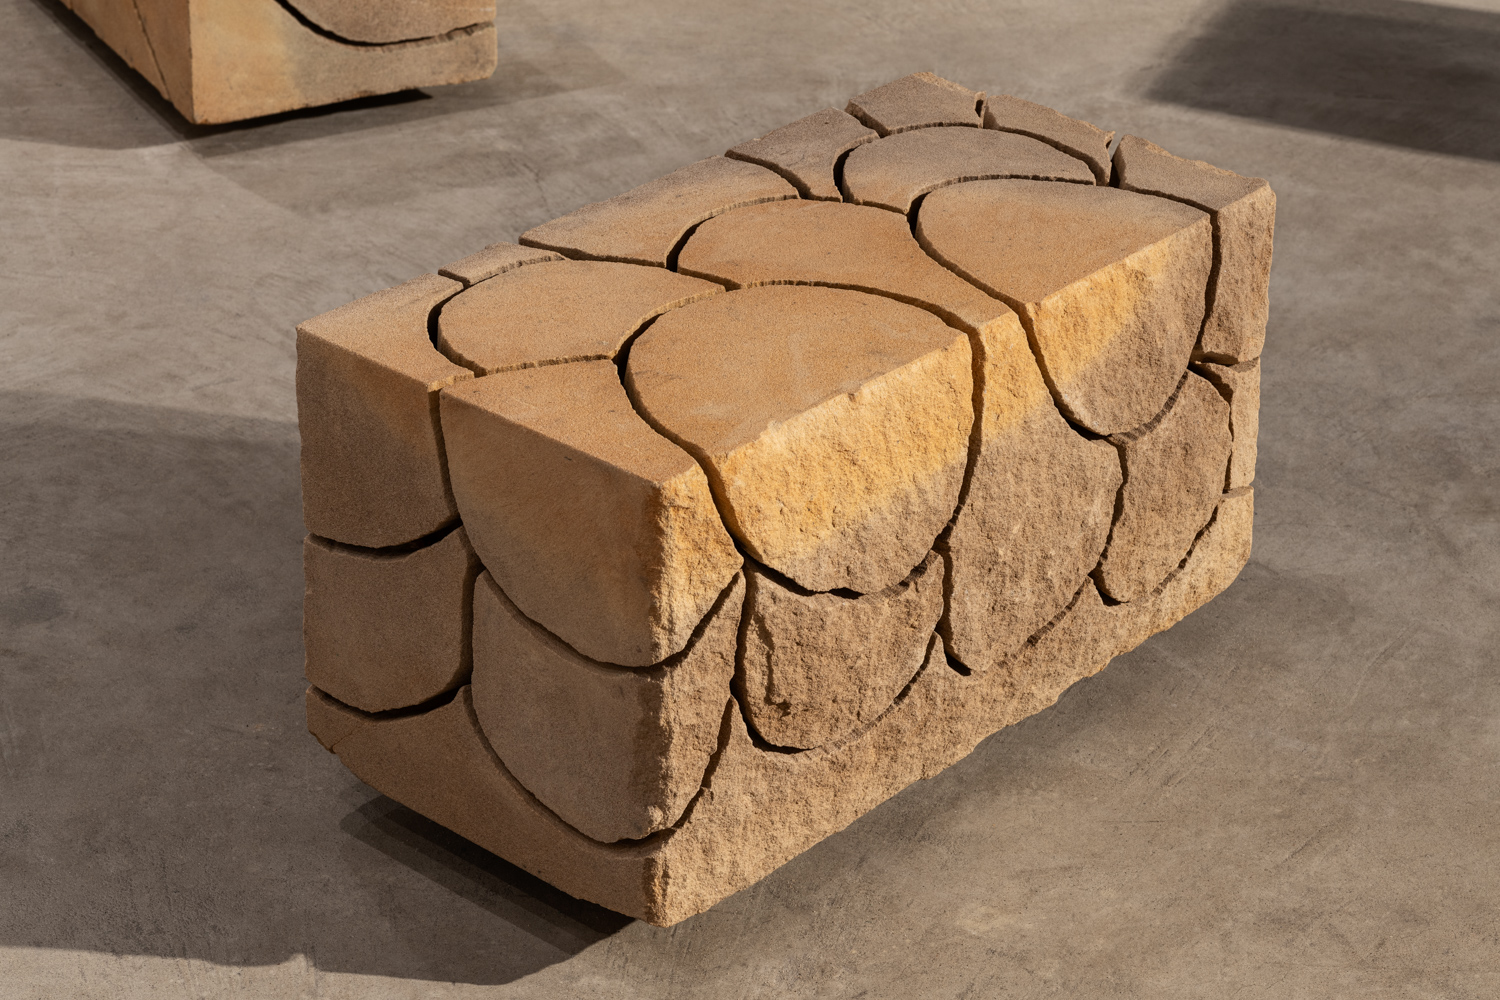 Maria Fernanda Cardoso, Scales from the Sandstone Drawing Series